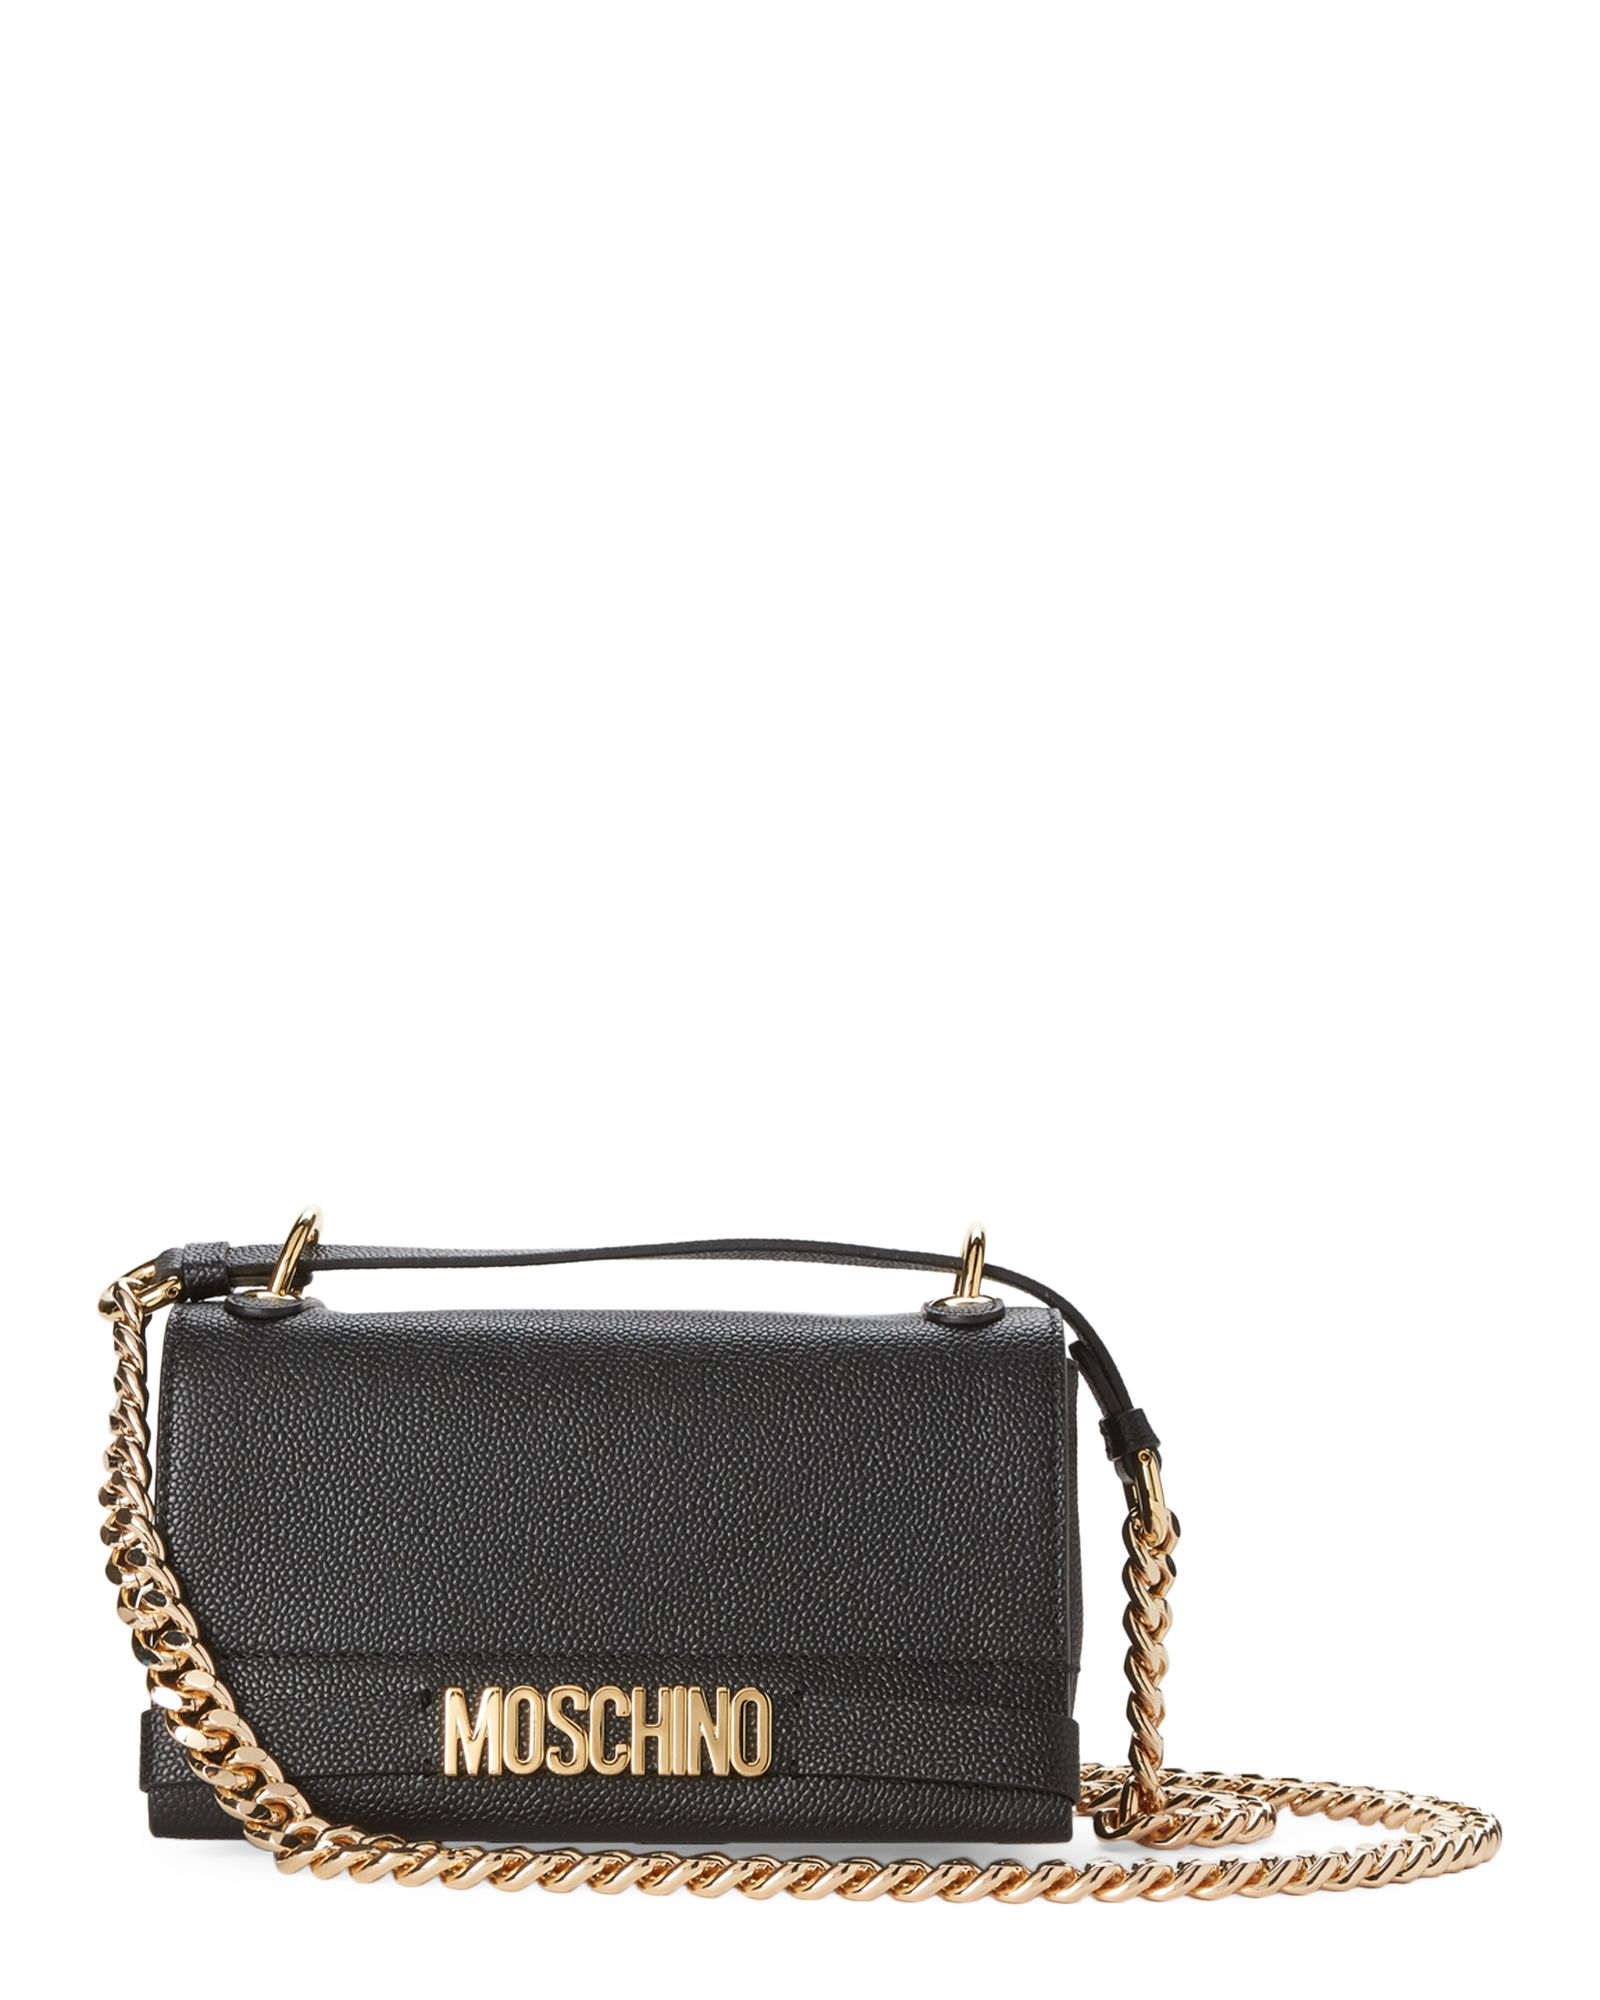 amazing price reasonable price new specials Moschino Black Logo Leather Shoulder Bag   Moschino bag